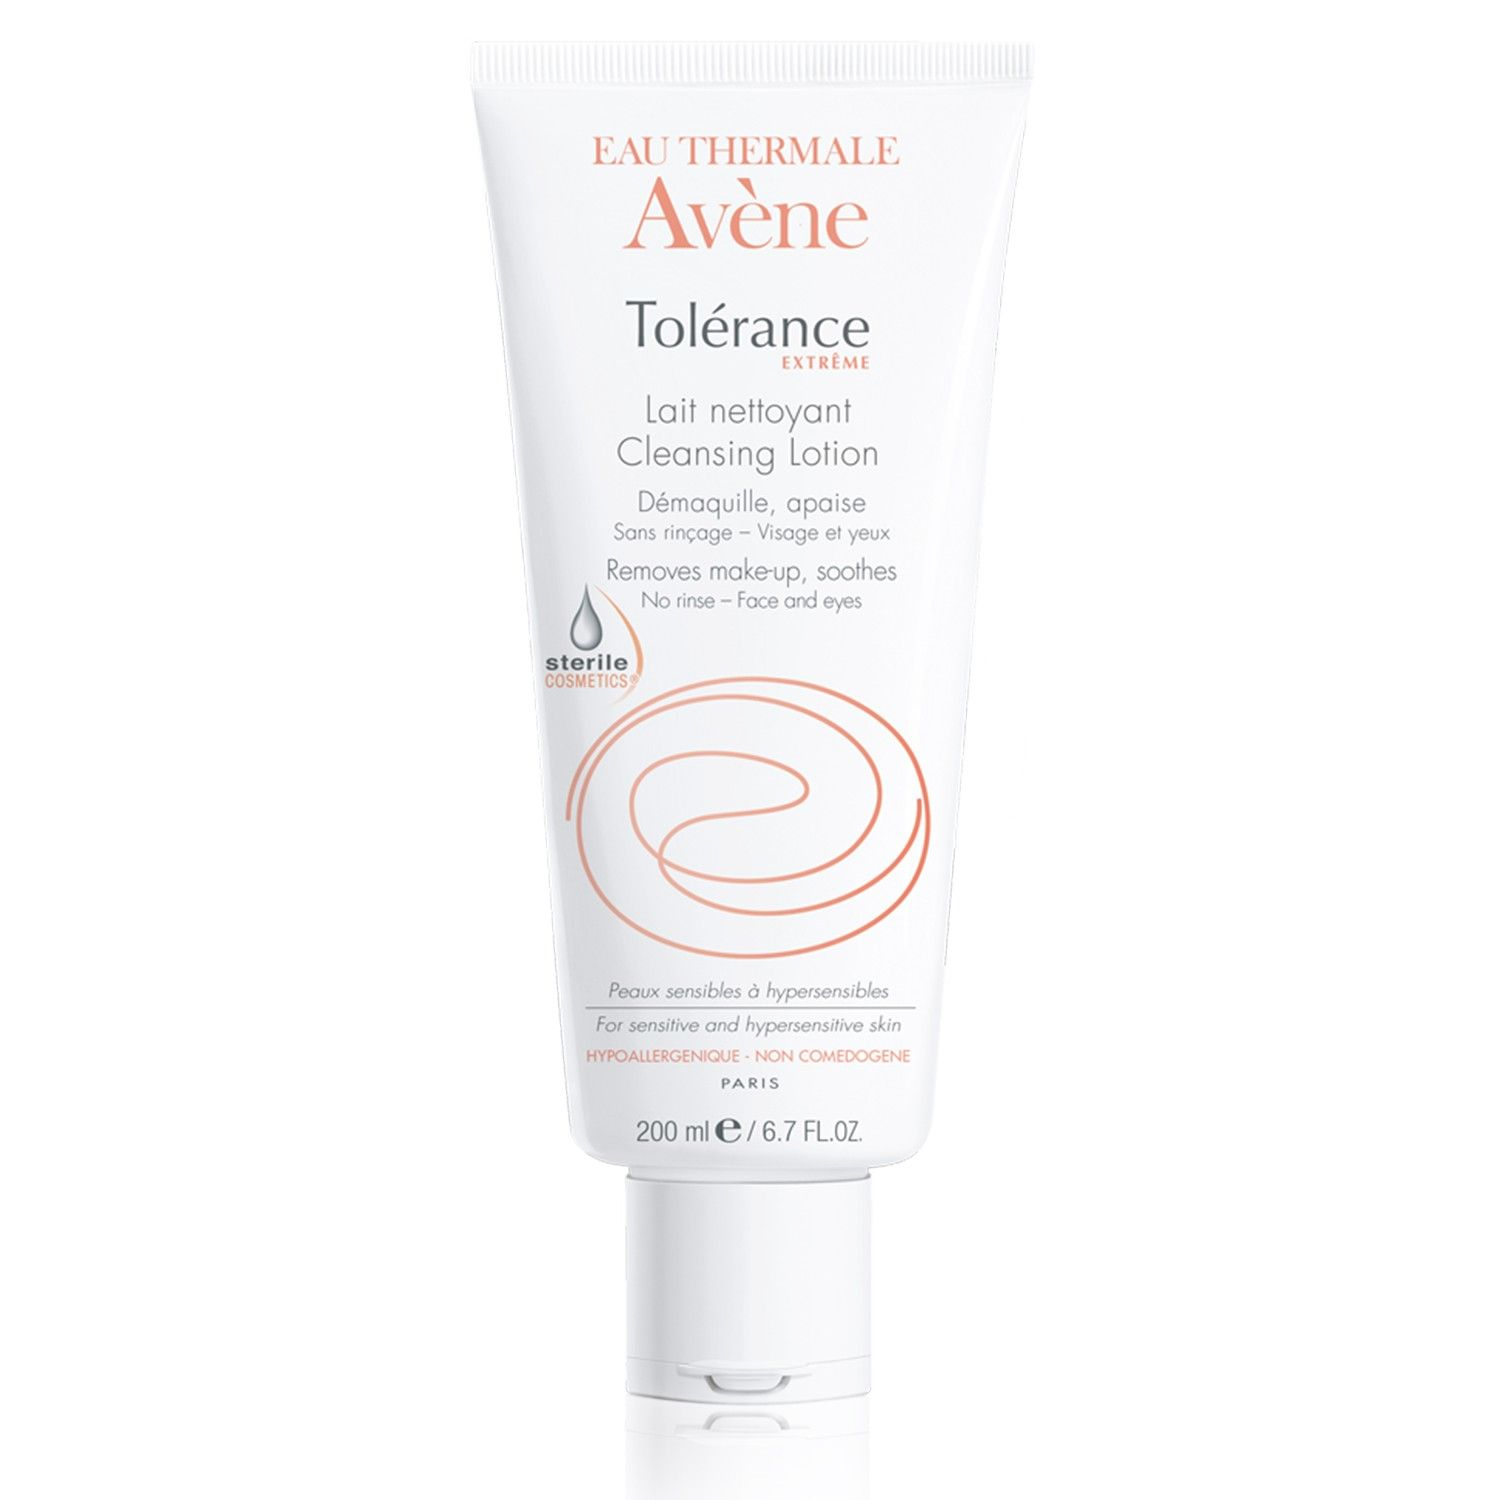 Buy Avene Tolerance Extreme Cleansing Lotion (200 ml / 6.7 fl oz)